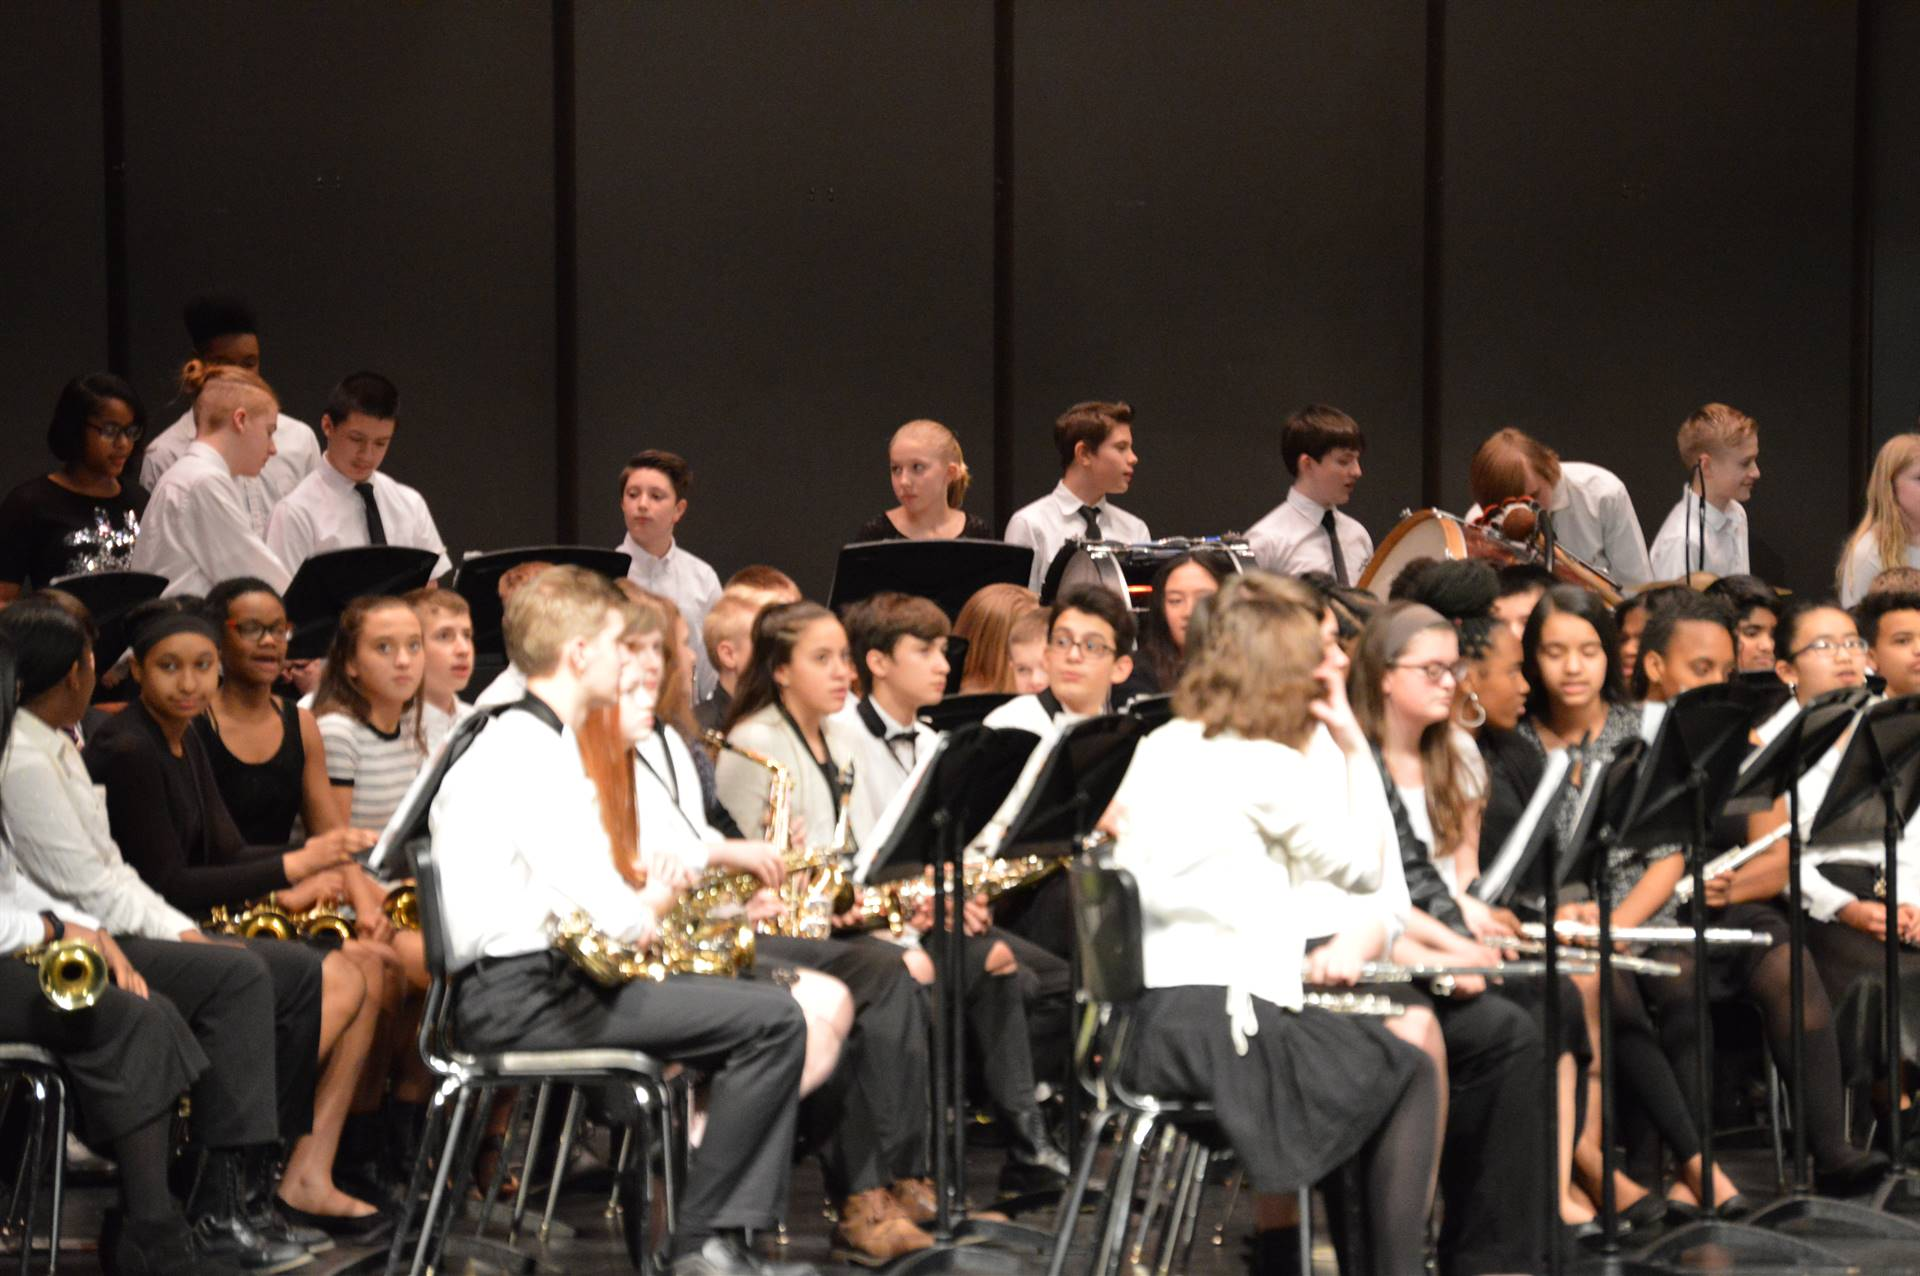 RBC Band Students on stage for a concert